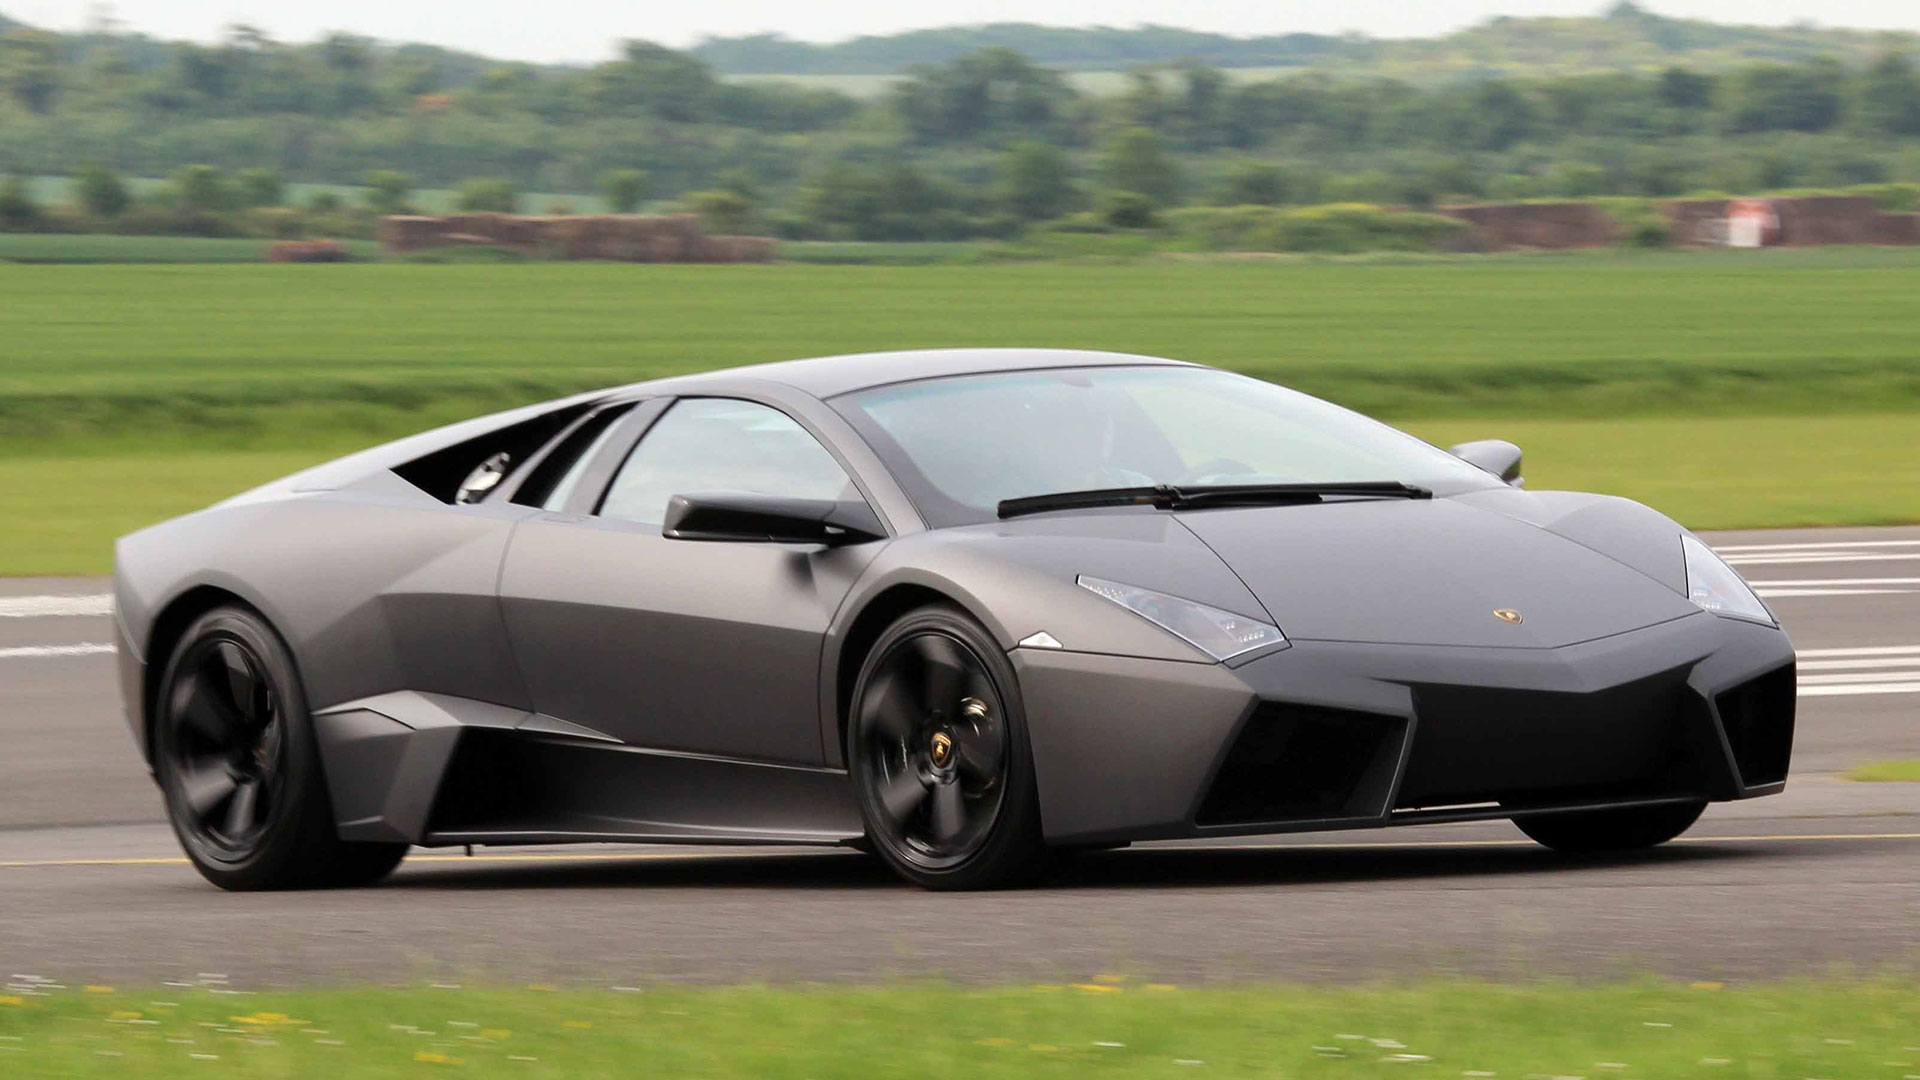 Lamborghini Reventon: 3.5 seconds